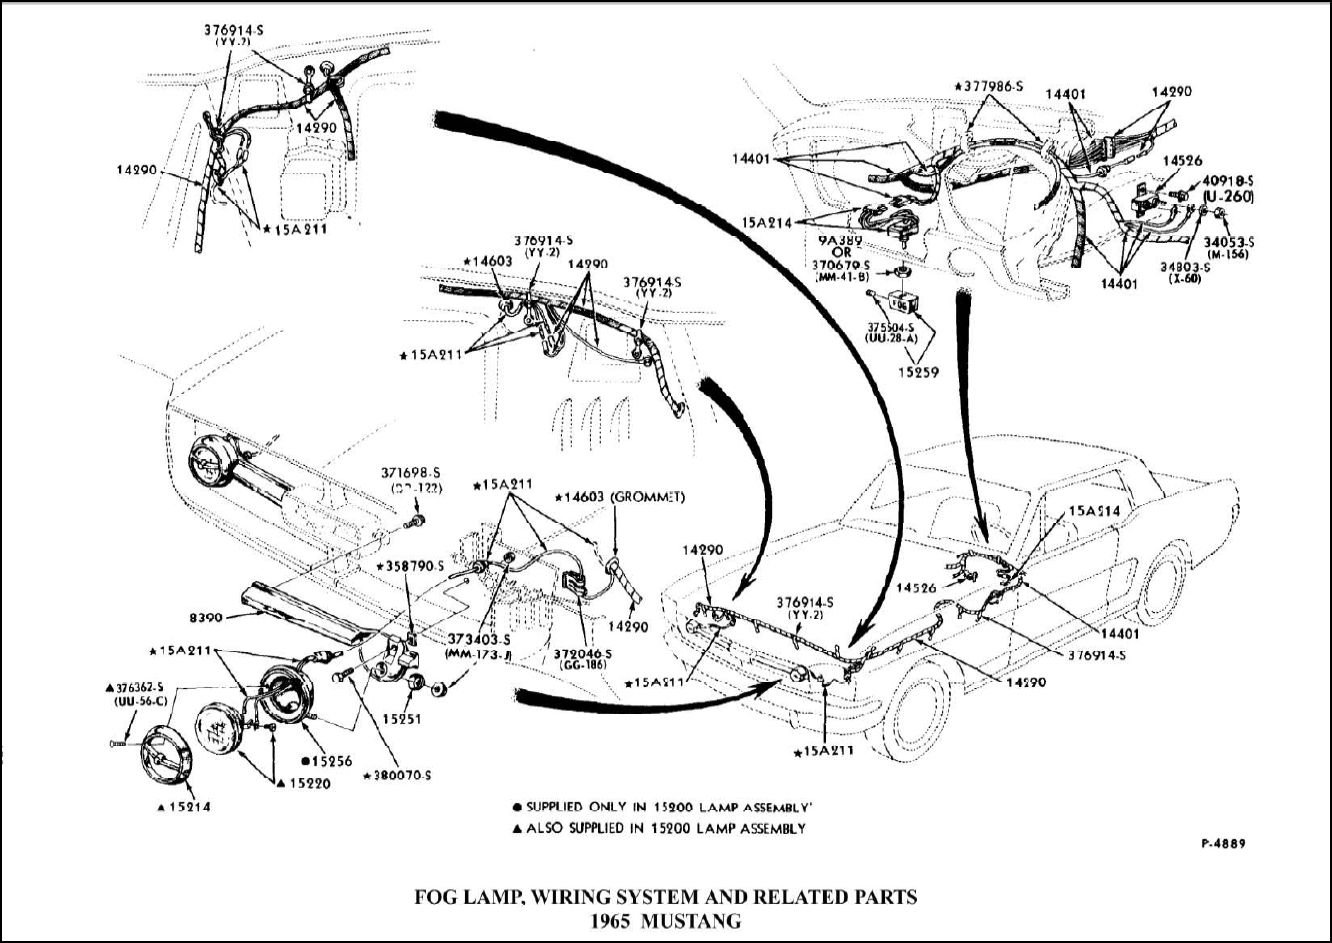 1965 mustang wiring diagram   27 wiring diagram images